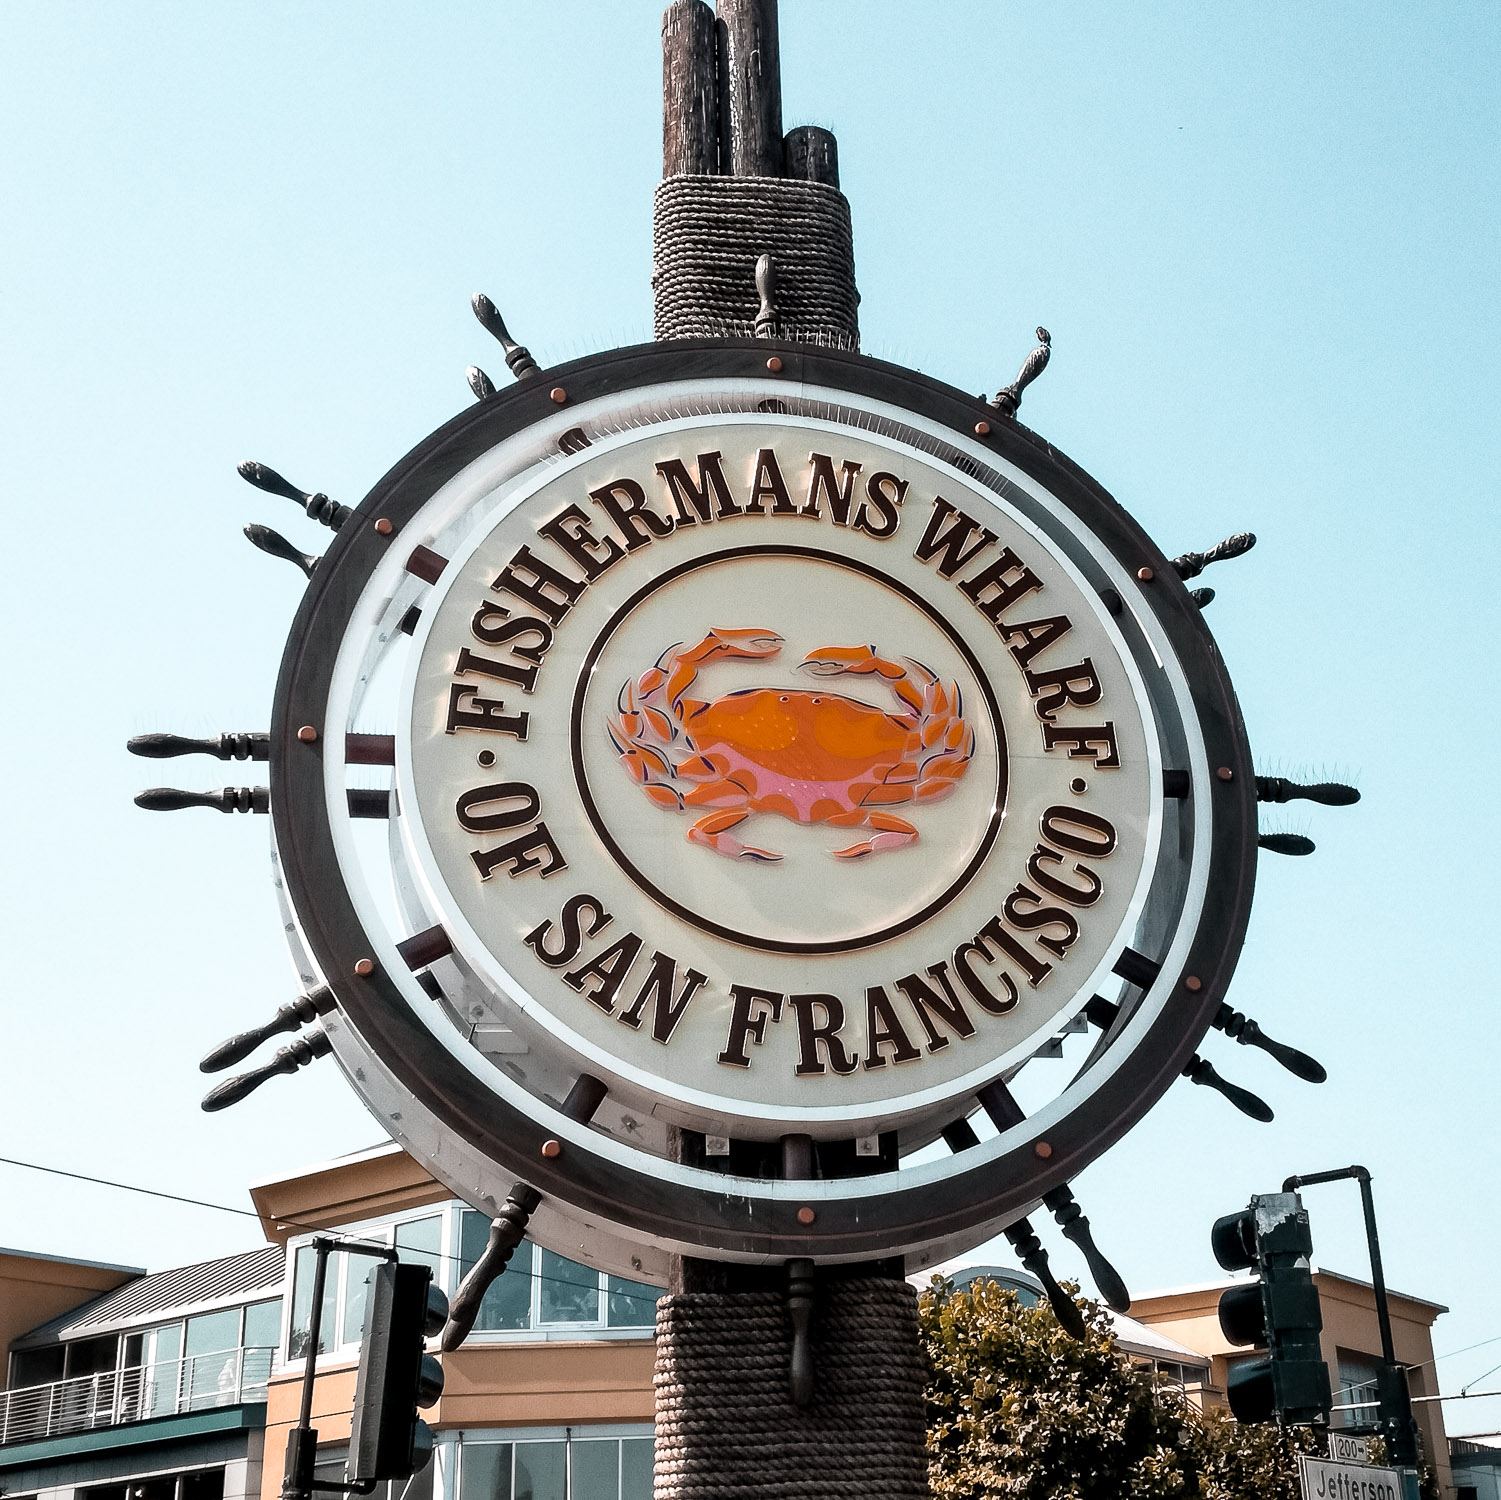 Fishermans Wharf Steuerrad San Francisco